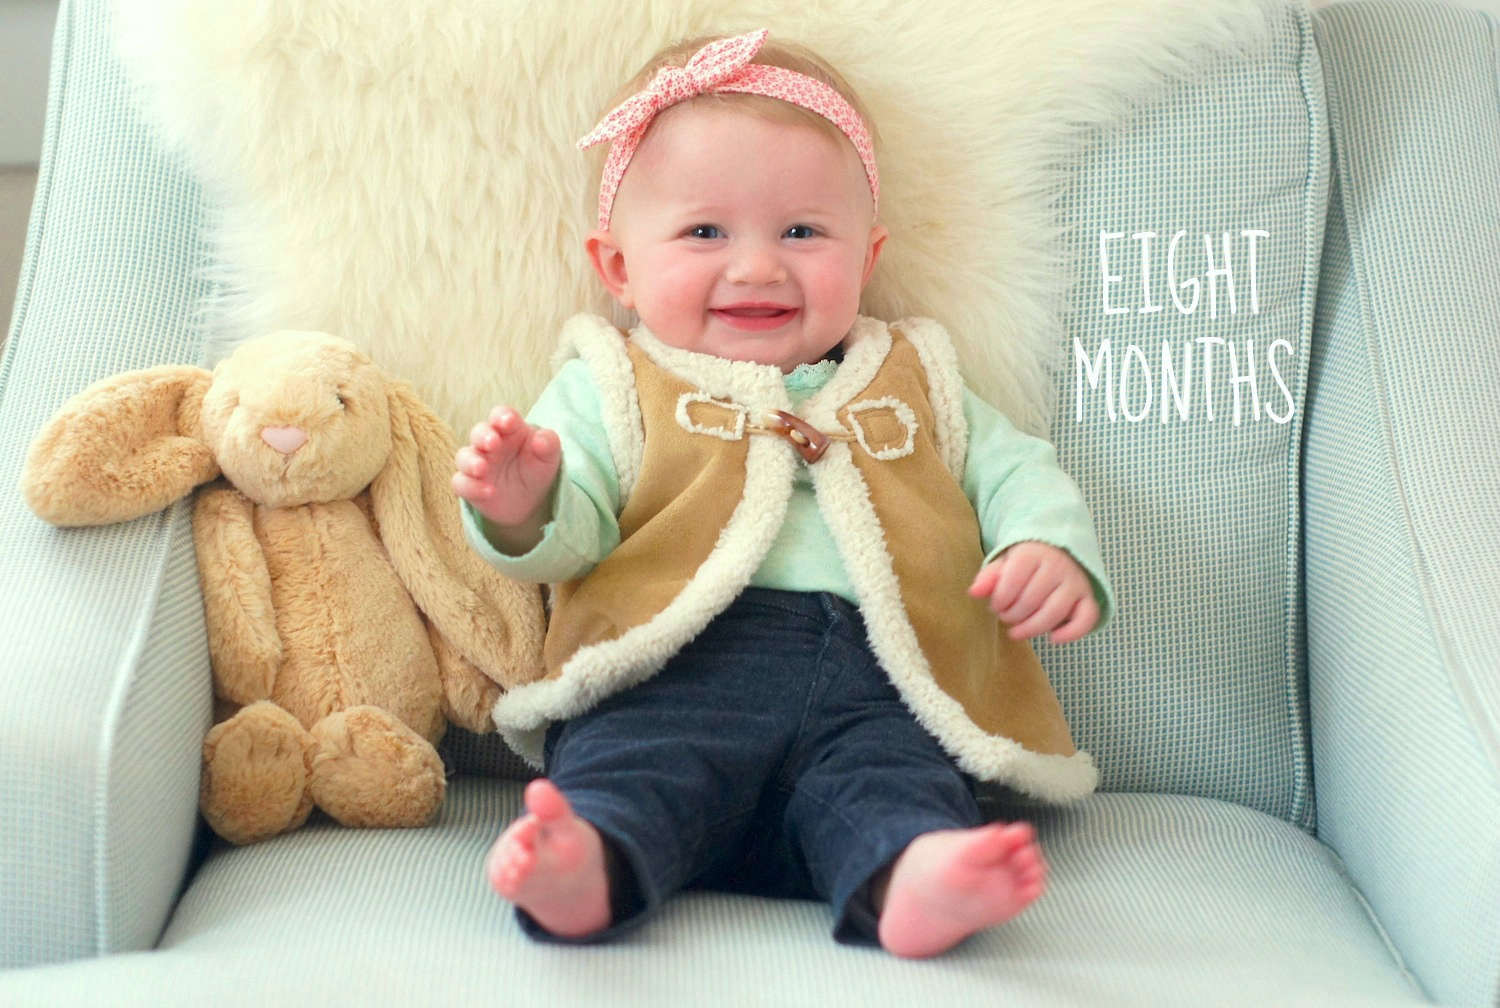 Fearless Baby - 8 months old